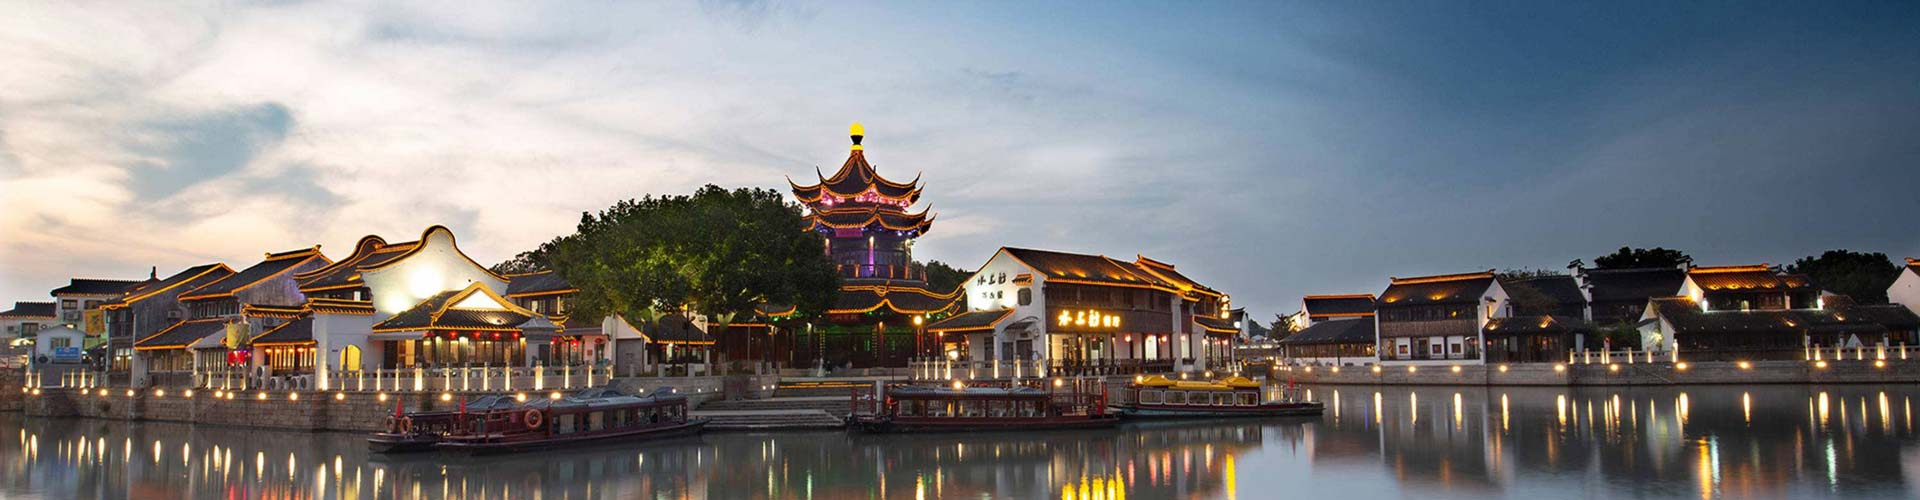 1 Day Private Suzhou Tour (start from Shanghai, round trip)